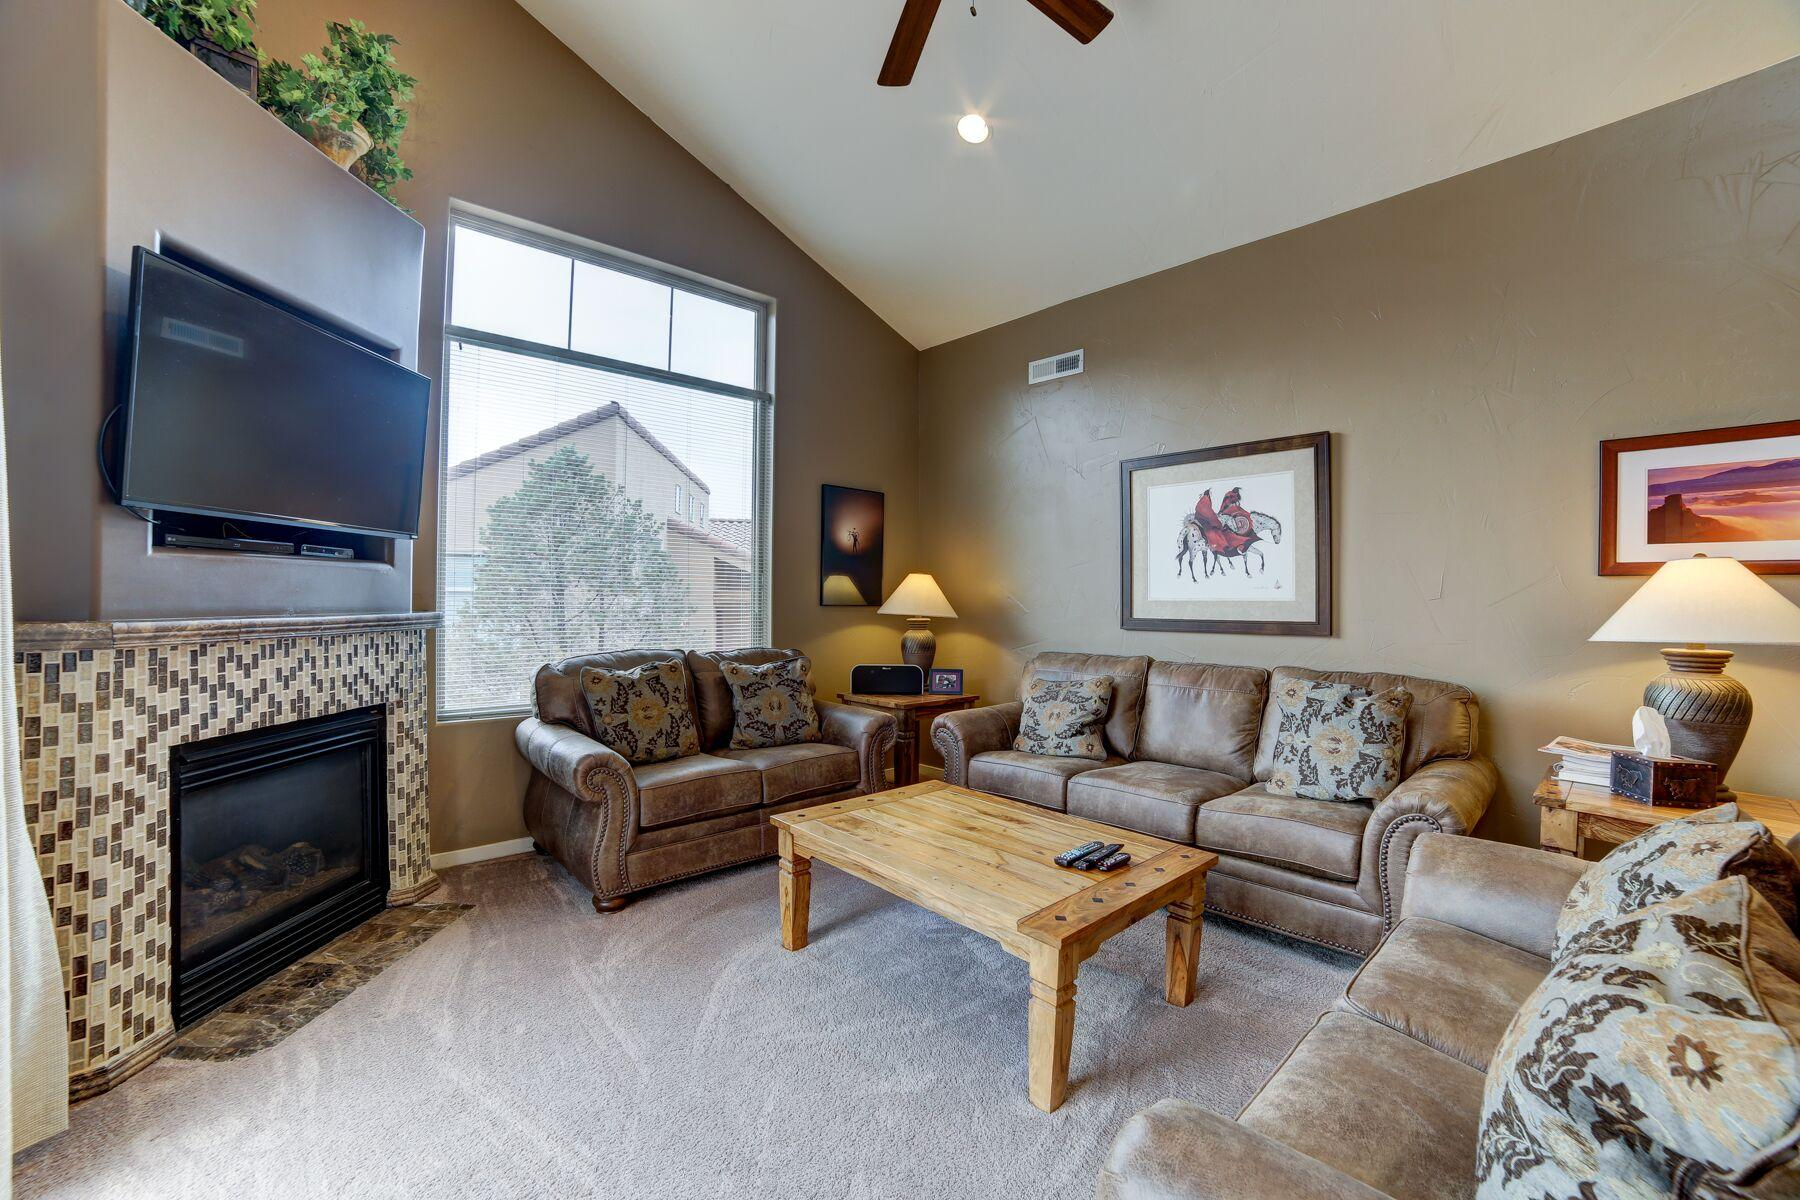 This cozy spacious living room offers plenty of comfortable seating, a large flat screen TV as well as great views and a gas fireplace!